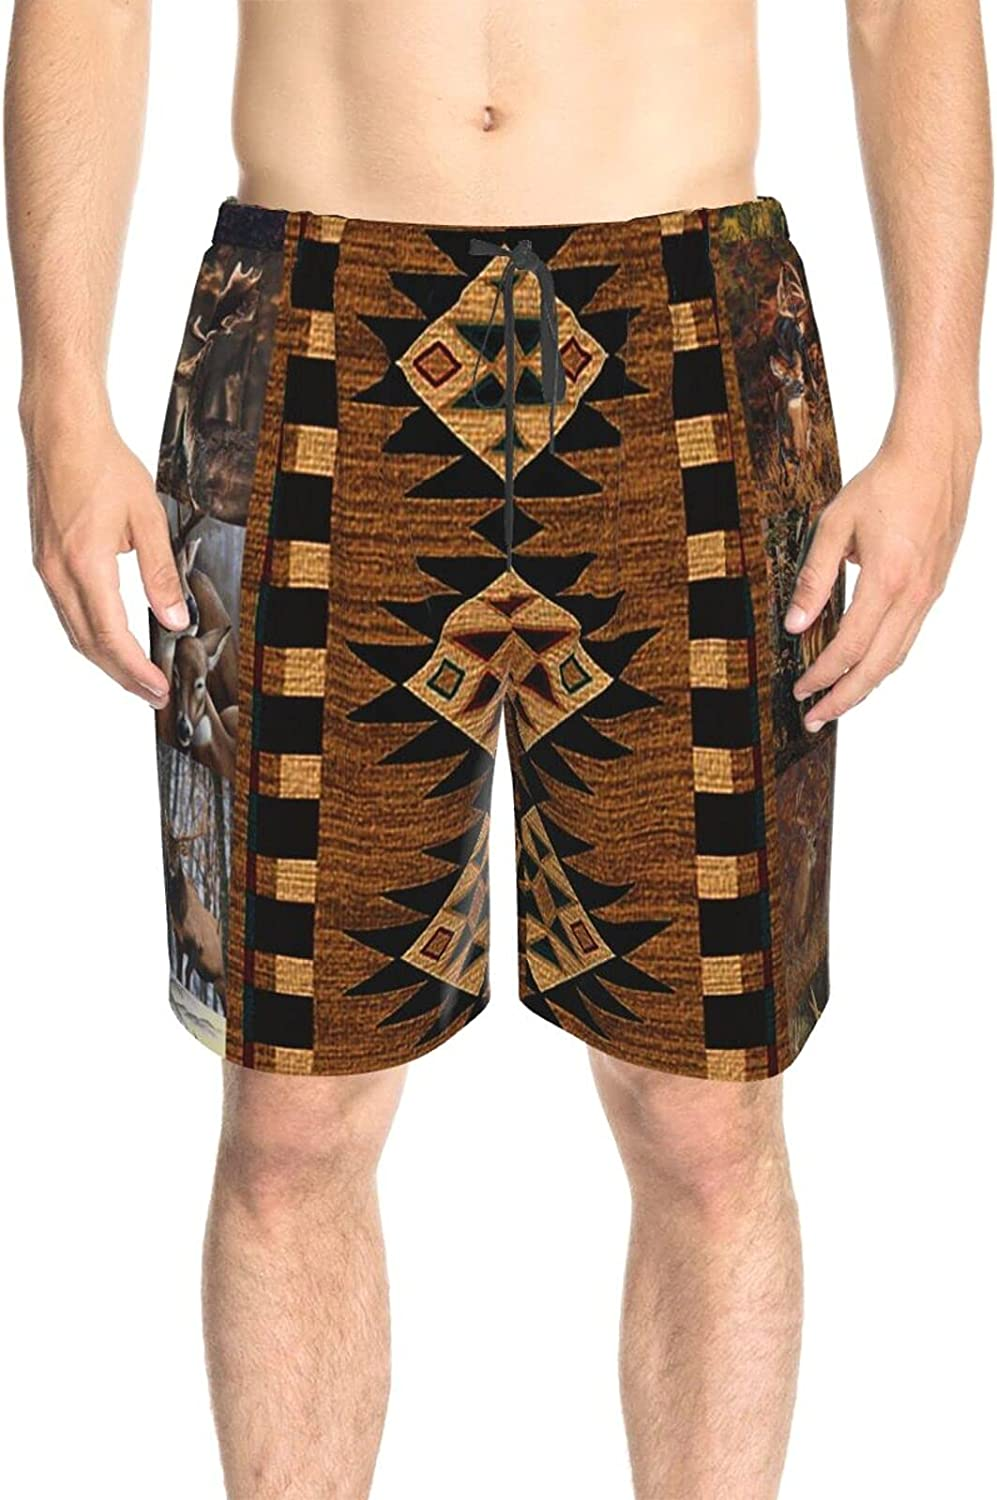 JINJUELS Men's Swim Shorts Wildlife Deer Forest Beach Board Shorts Quick Dry Cool Surf Beach Shorts with Pockets